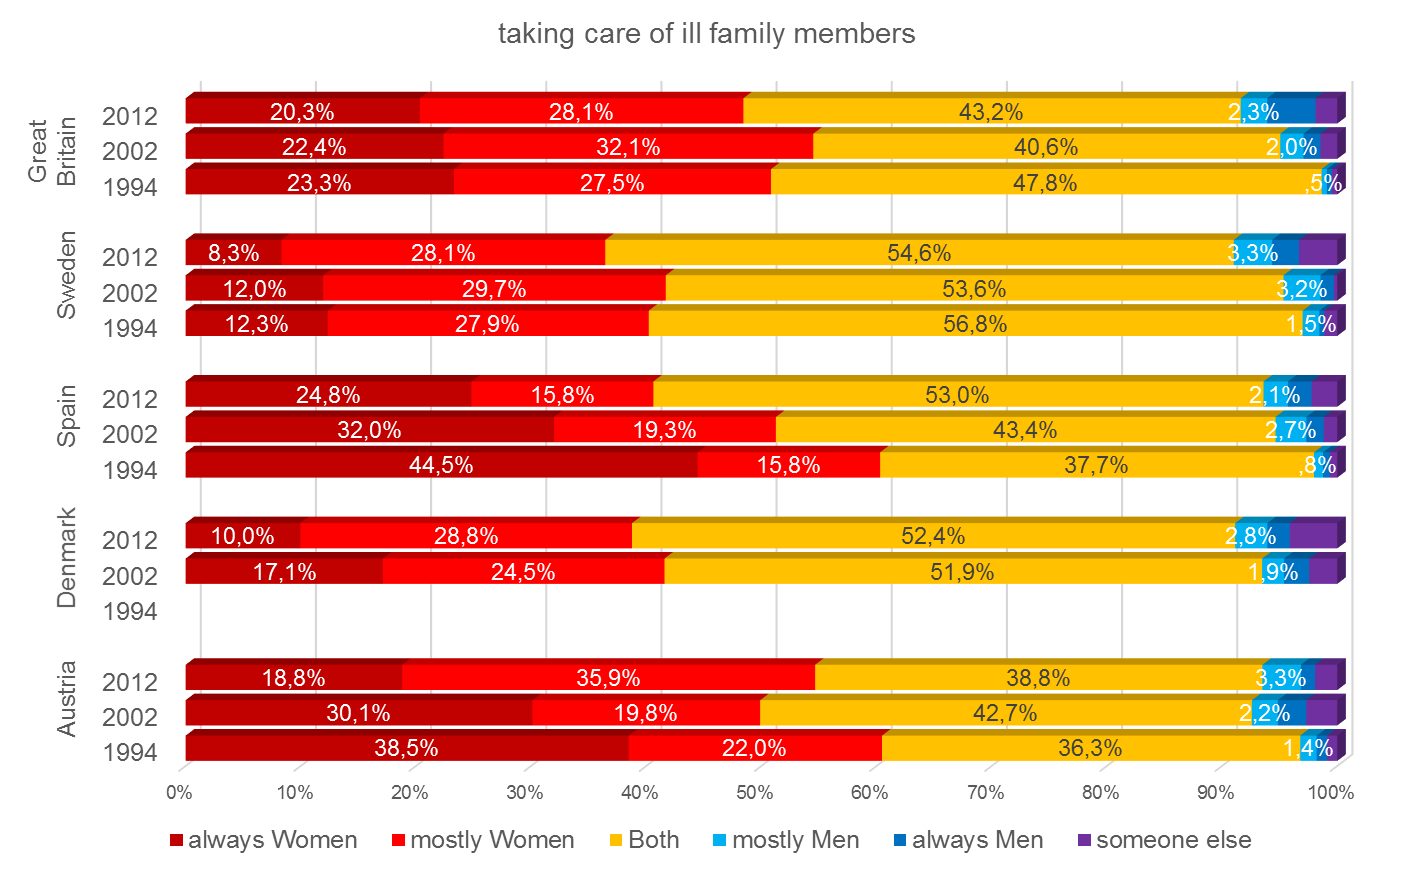 Share of housework: Taking care of ill family